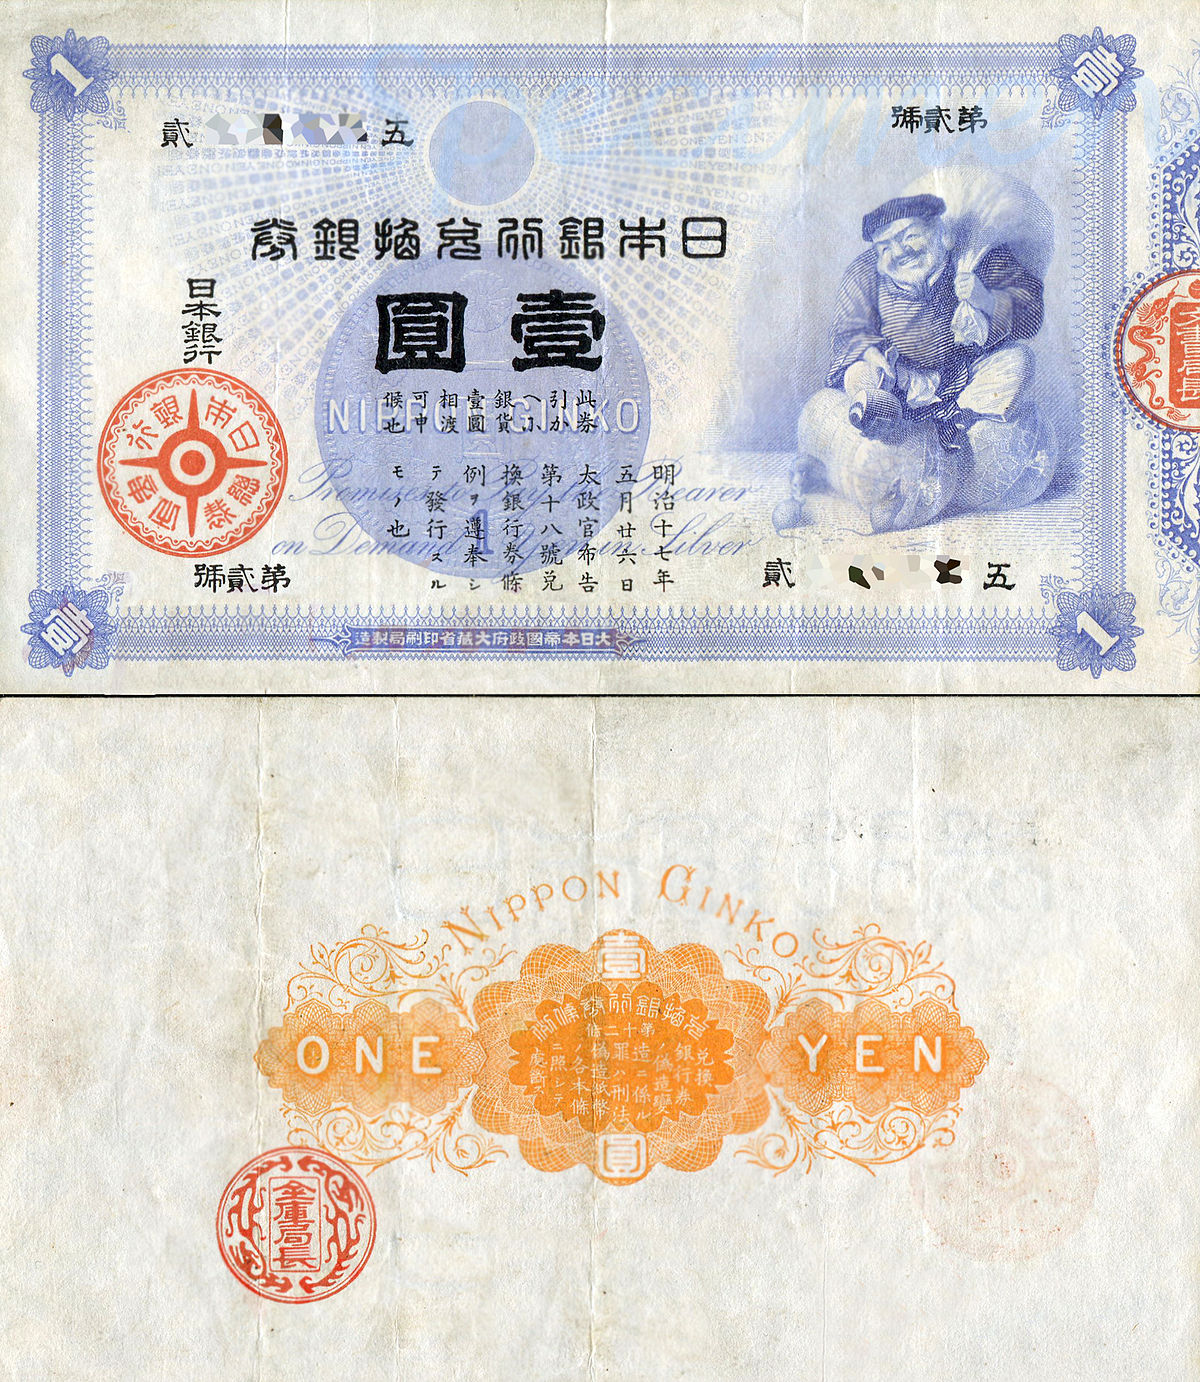 term used for the non convertible paper money